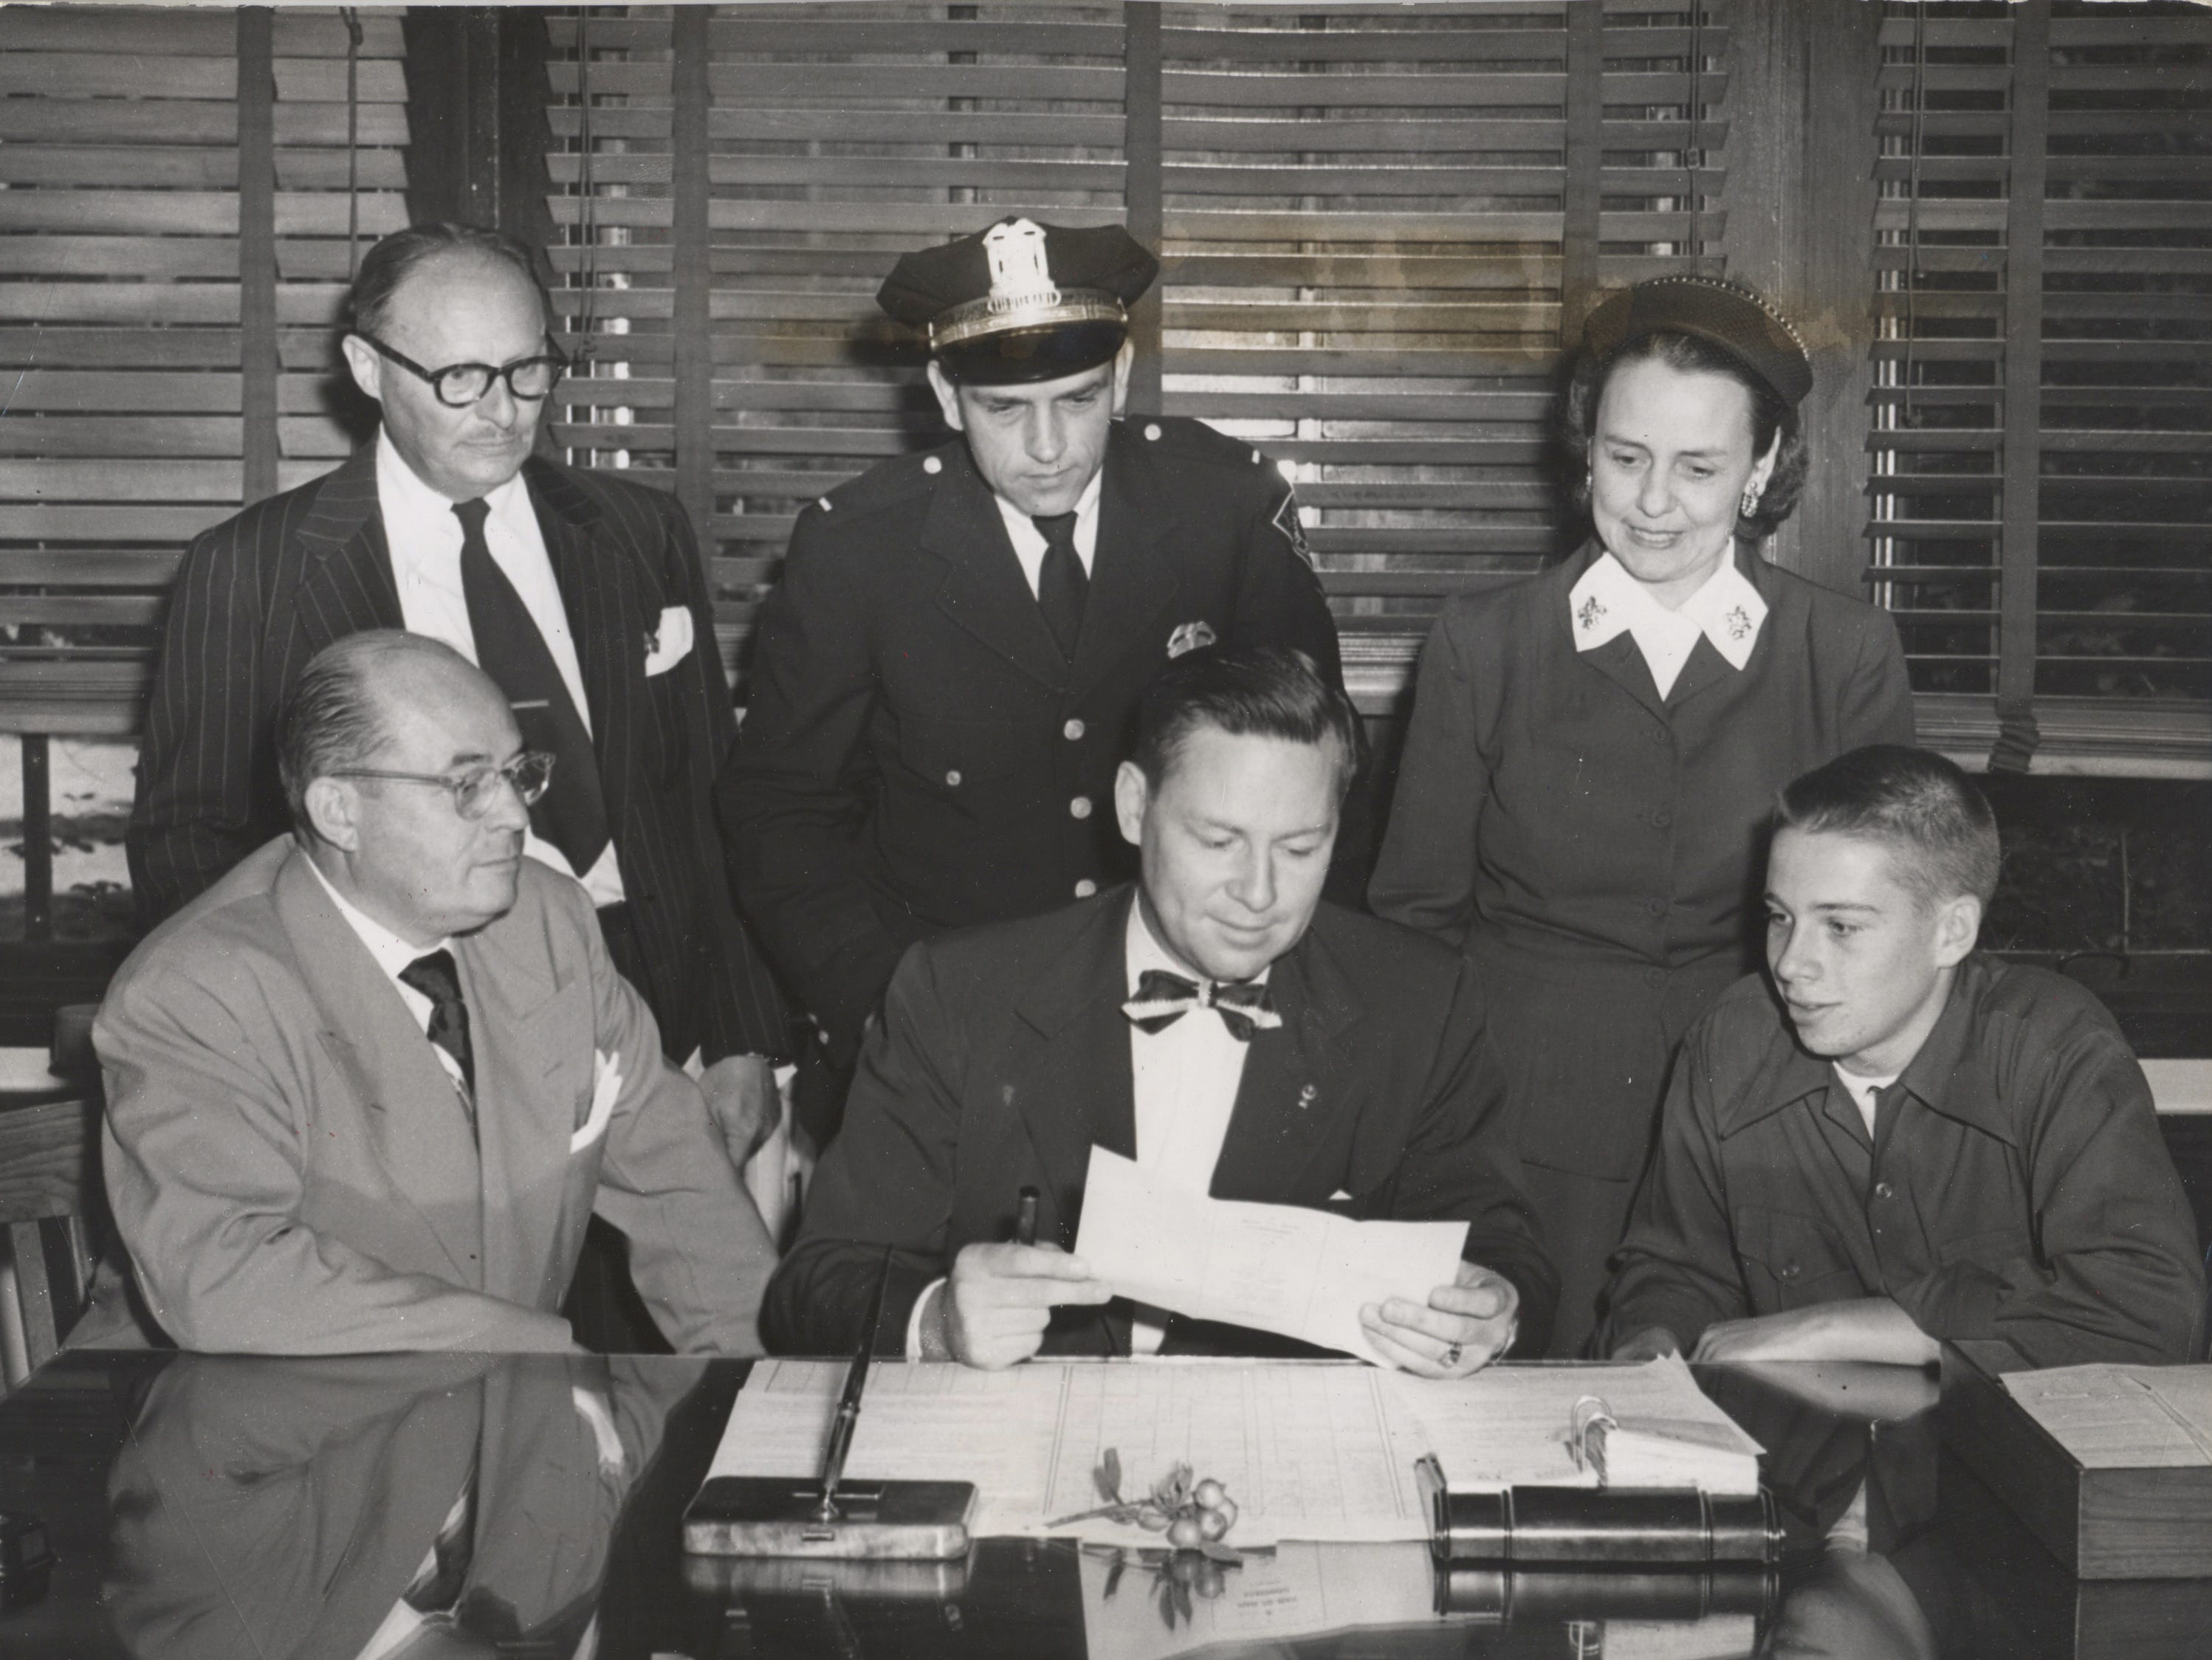 "Judge Alex M. Clark of the Indianapolis Municipal Court reads the terms of the ""Man to Man"" teenagers driving agreement to Donald R. Morris, 17 year-old Shortridge High School senior, this being preliminary to the launching of a safe driving campaign for the youths of Indianapolis in Caleb Mills Hall at Shortridge High School in 1949. In the picture seated are Ralph D. Morris, left, father of Donald Morris, right. Judge Clark is in the middle Standing left to right are Thomas E. Hanika, manage of the Indianapolis Automoblie Trade Association; Lieut. Harry Bailey of the Traffic Safety Education Division, Indianapolis Police and Mrs. M. Lugar, president of the Shortridge Parent Teacher Association."